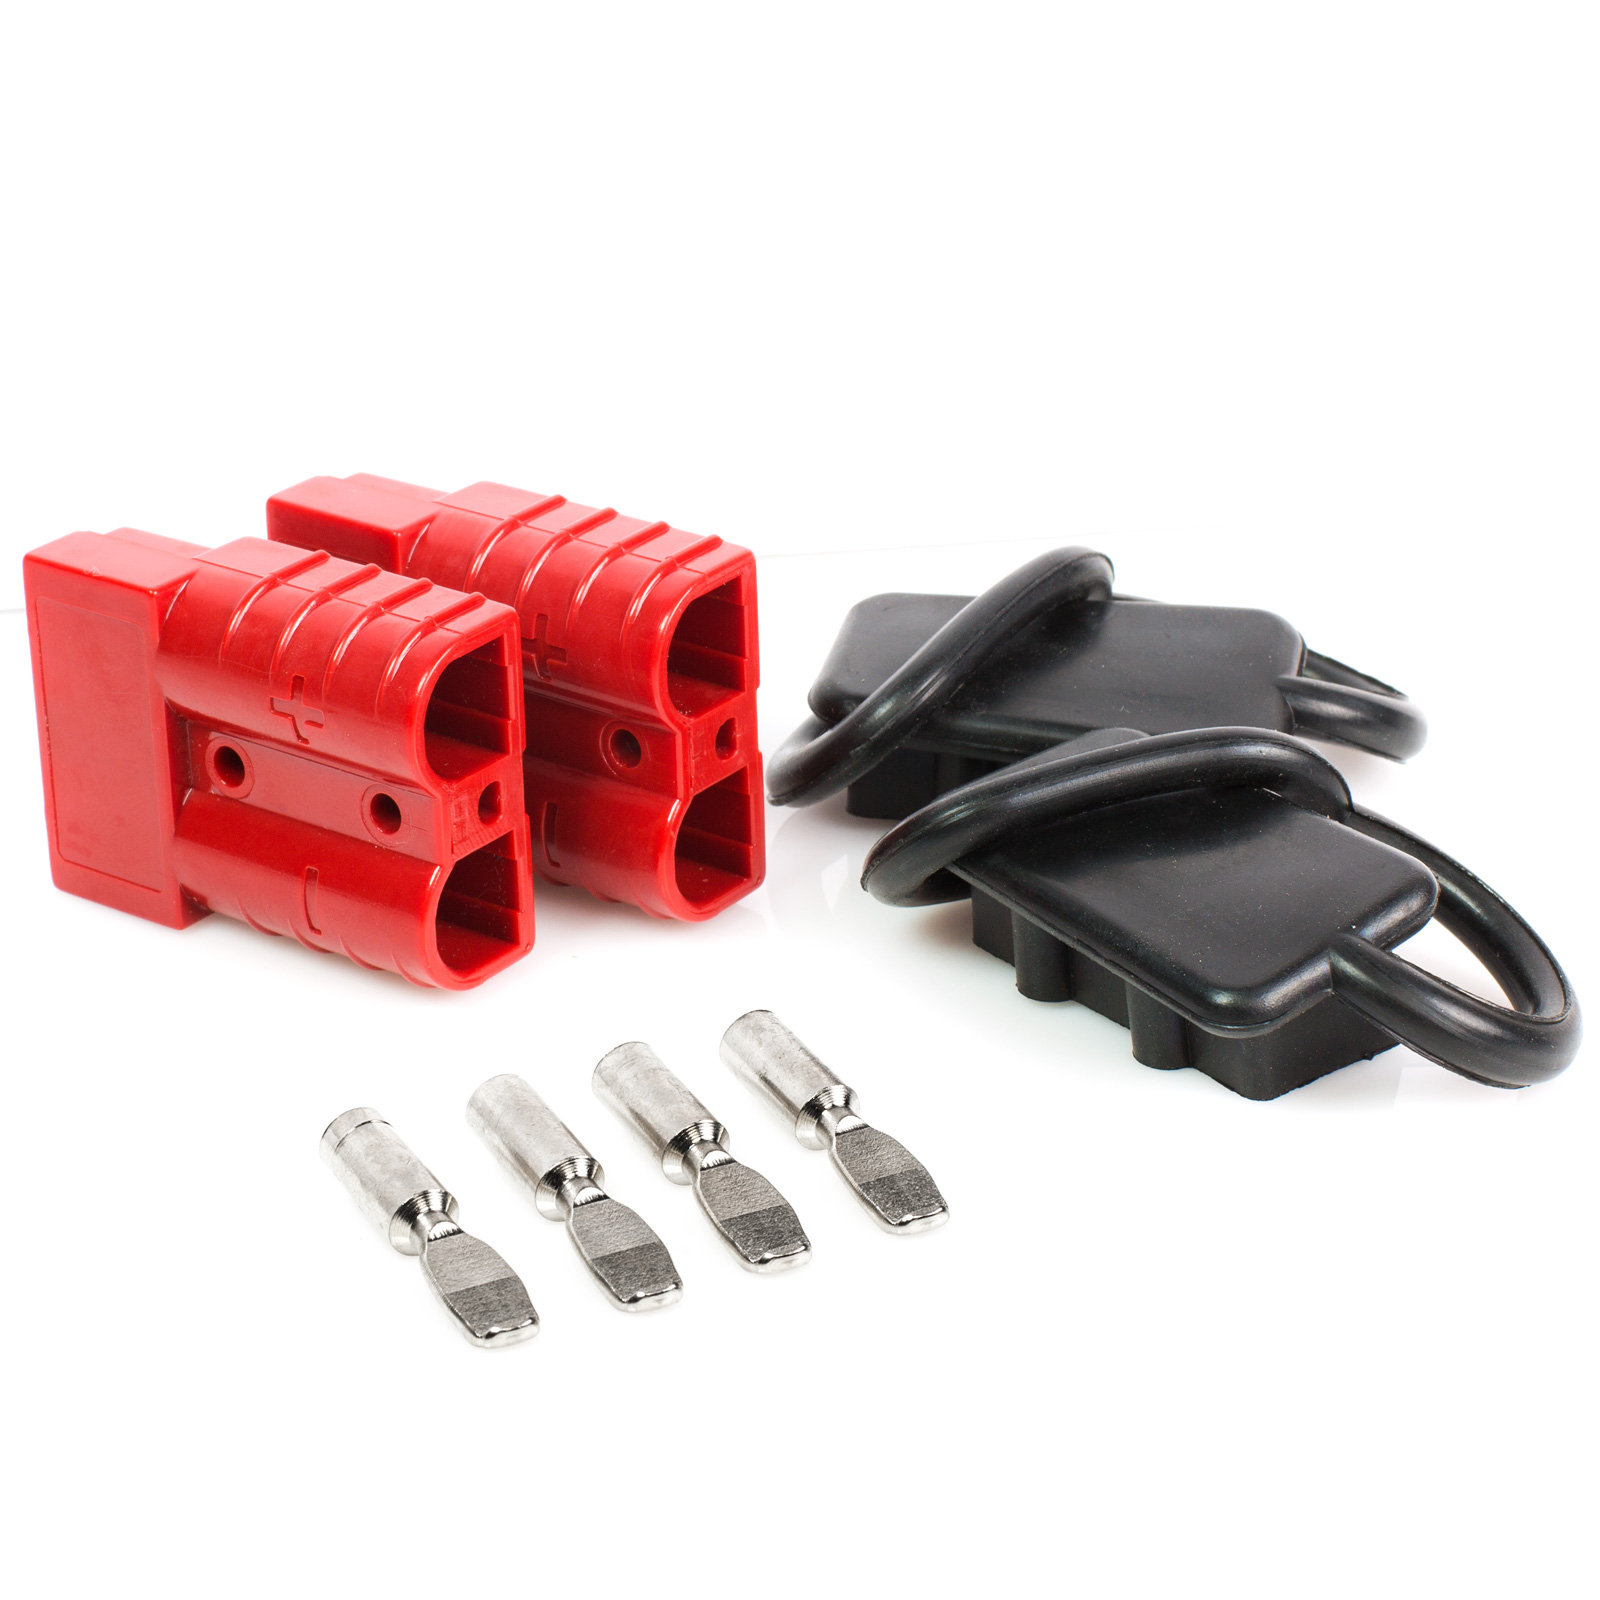 hight resolution of battery quick connect disconnect electrical plug 6 10 gauge 75 amps for recovery winch or atv quad walmart com